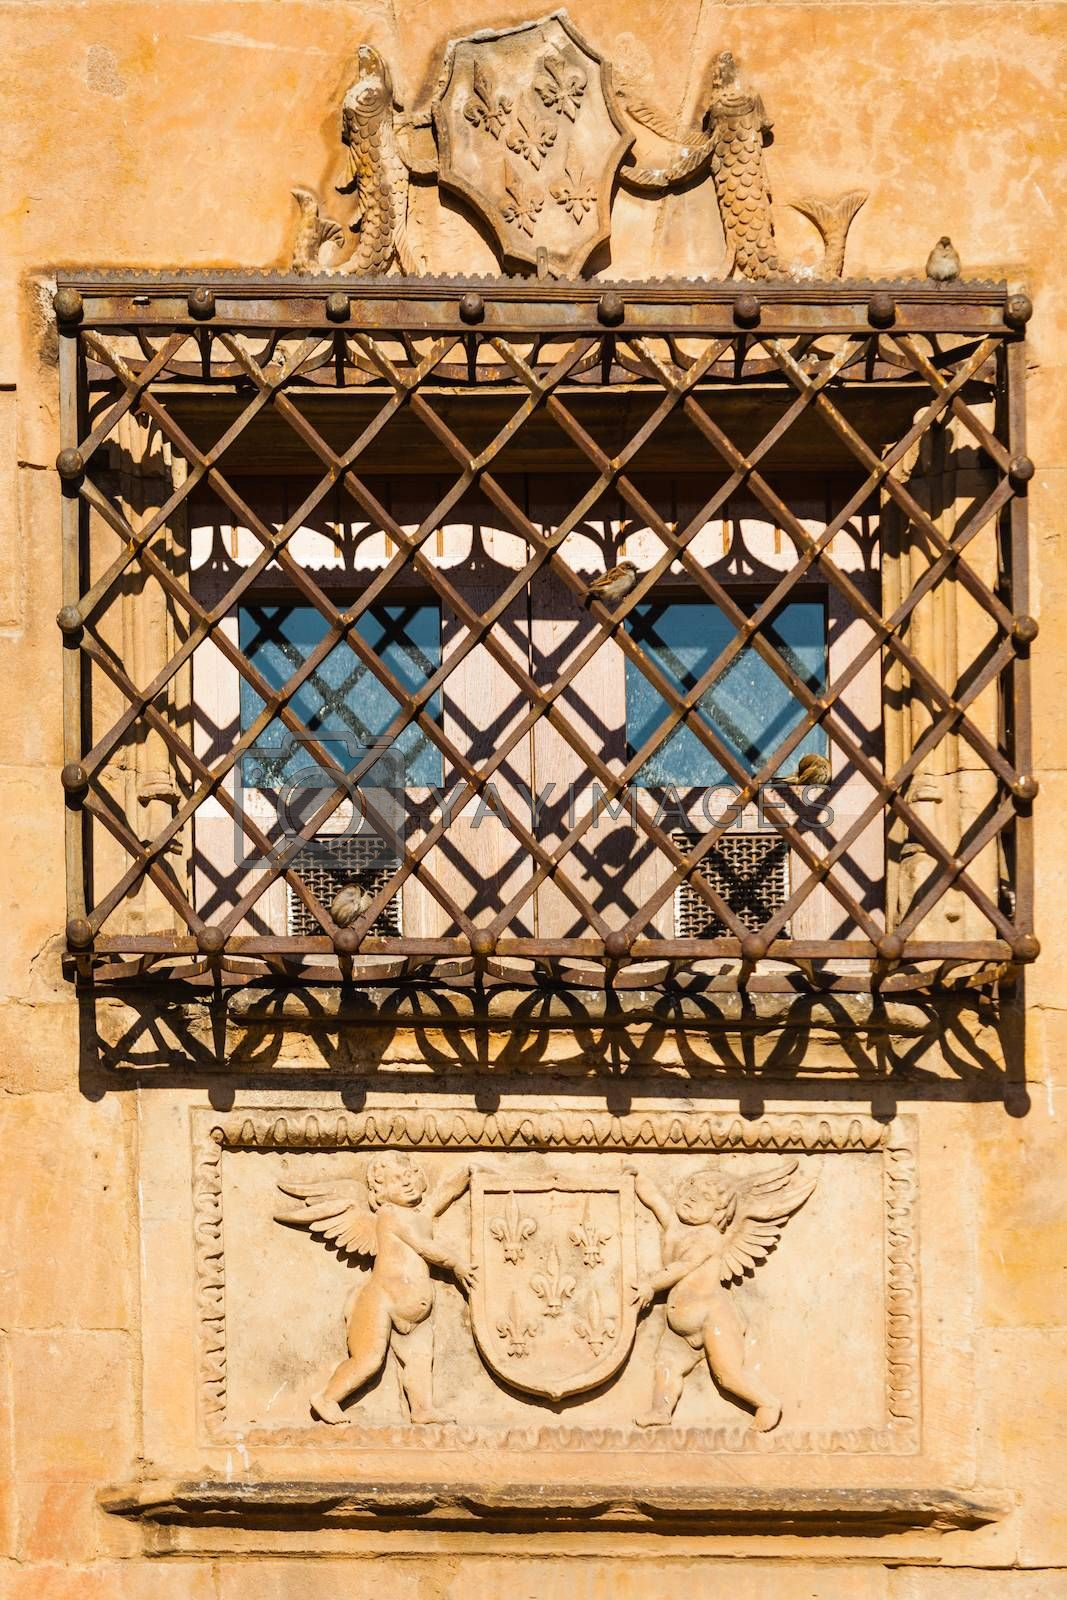 beautiful window and hard forge with birds in The House of Shells ,Salamanca Spain